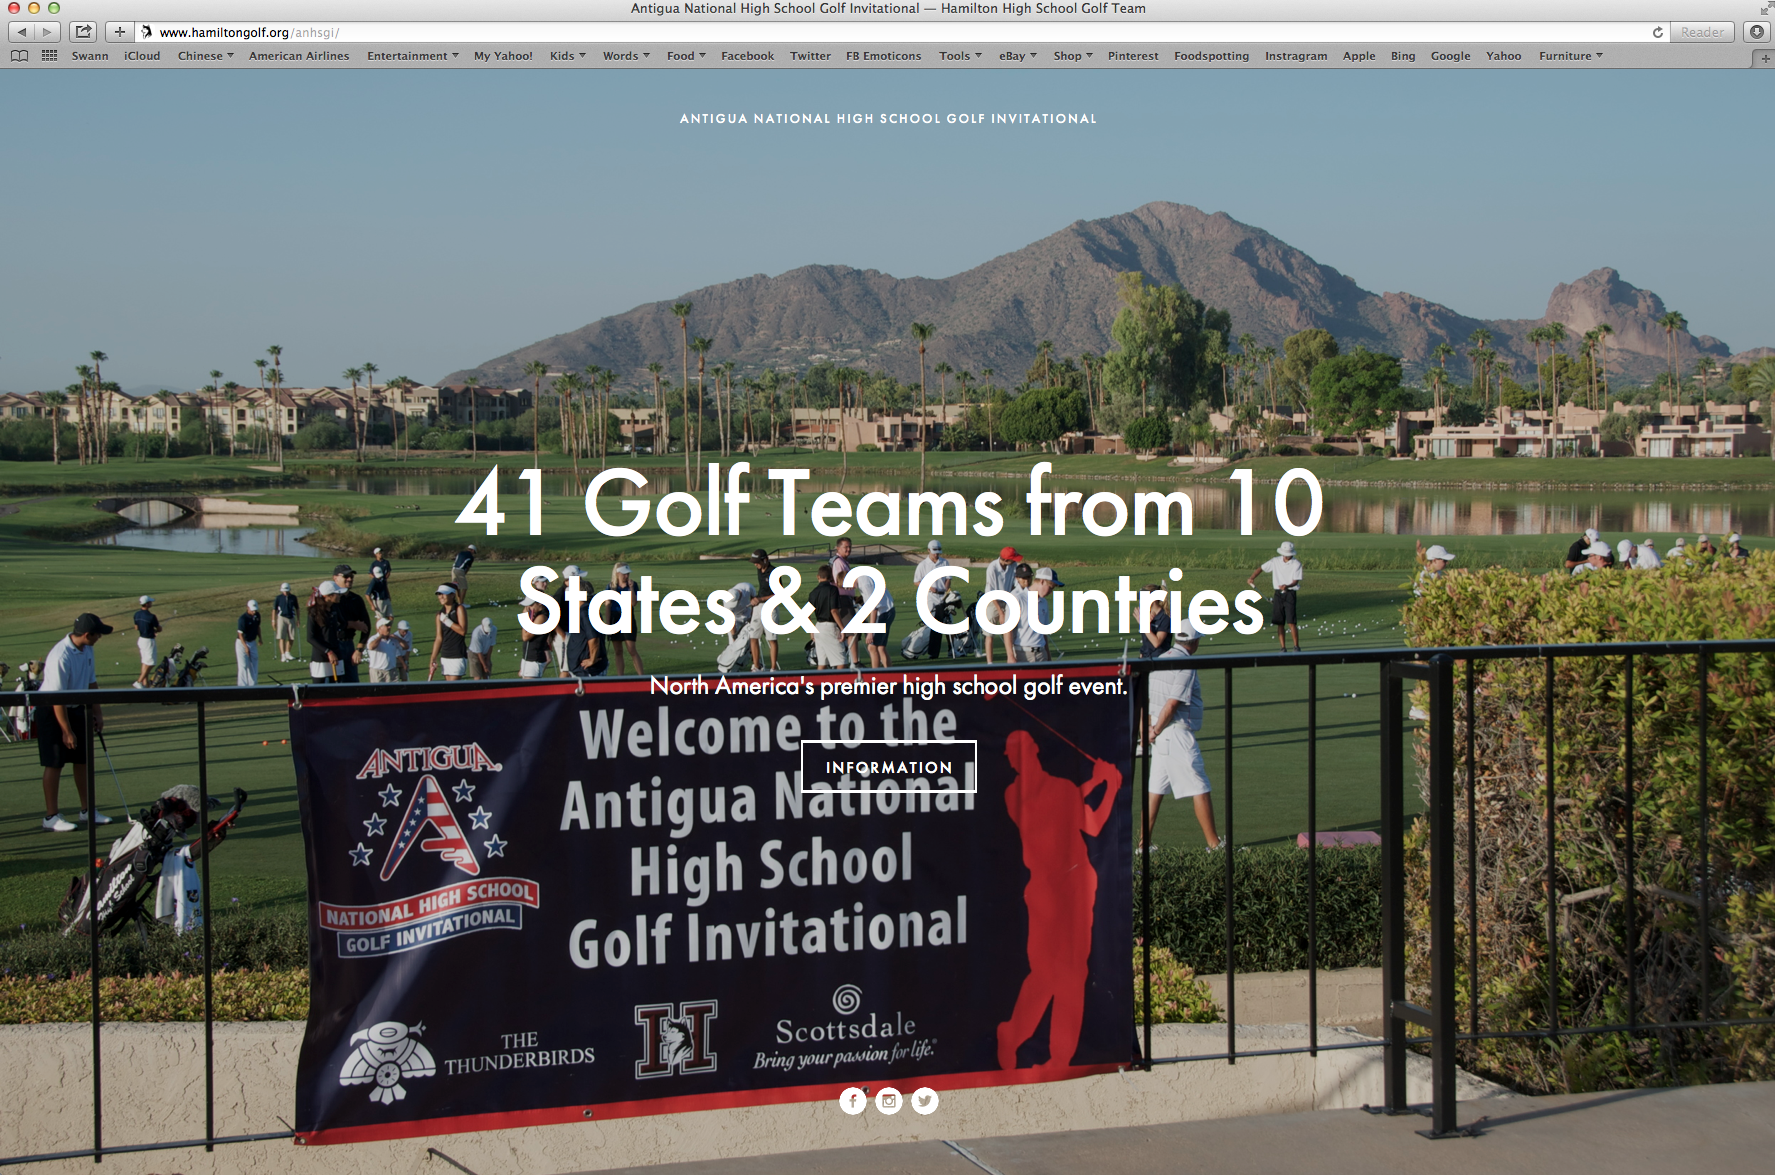 Please visit ANHSGI Home Page for more information ( http://www.hamiltongolf.org/anhsgi )